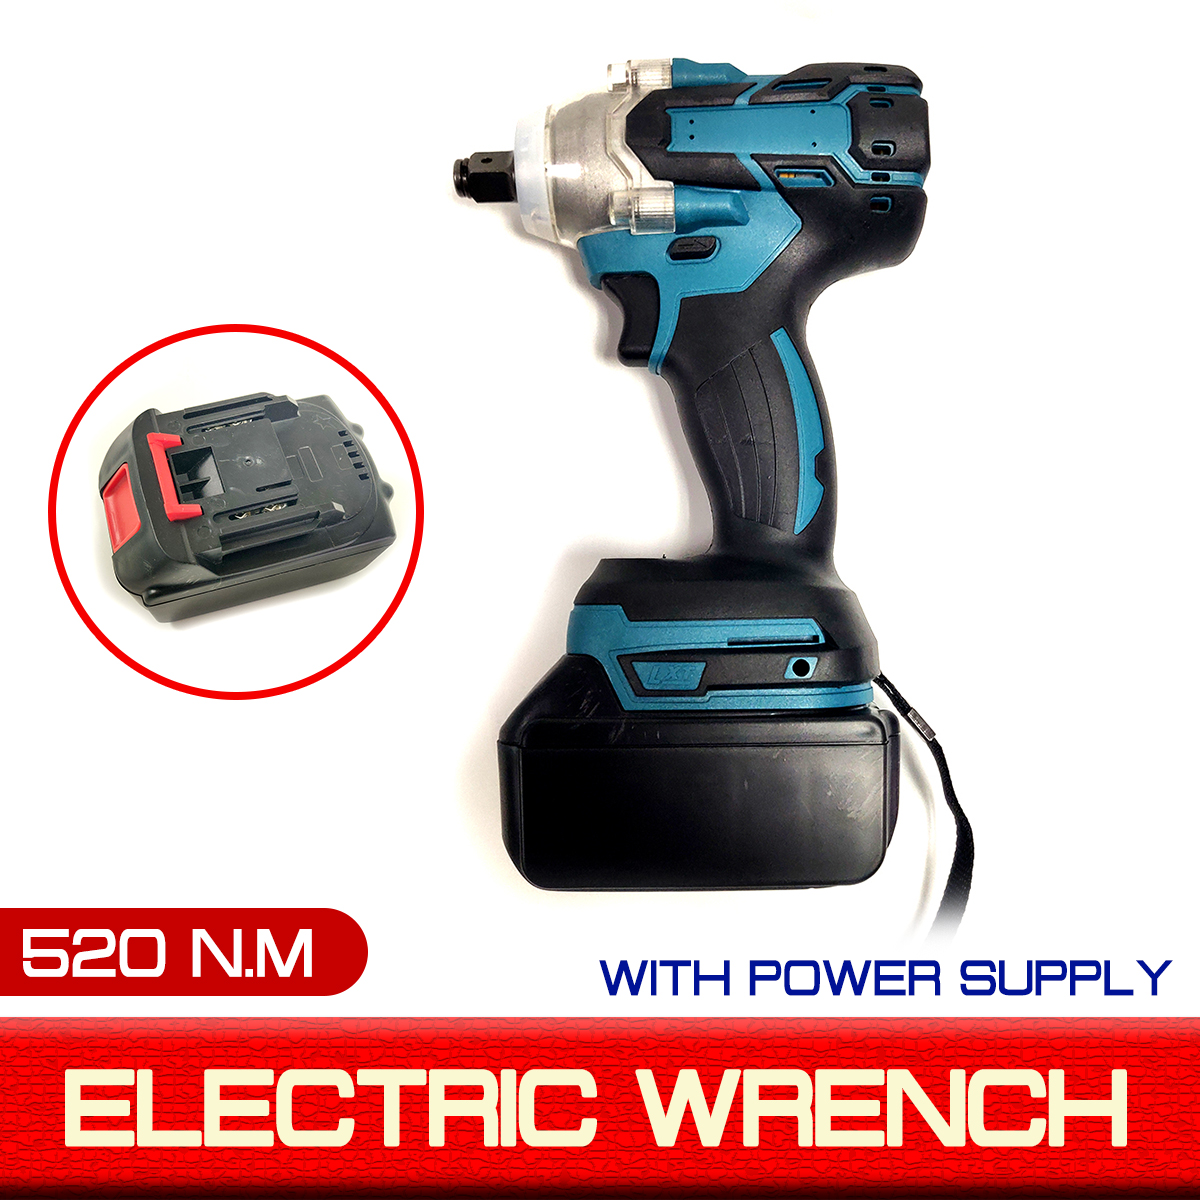 520Nm 18V Electric Wrench Brushless Impact Rechargeable Cordless 1/2 Socket Wrench Power Tool For Makita Battery DTW285Z